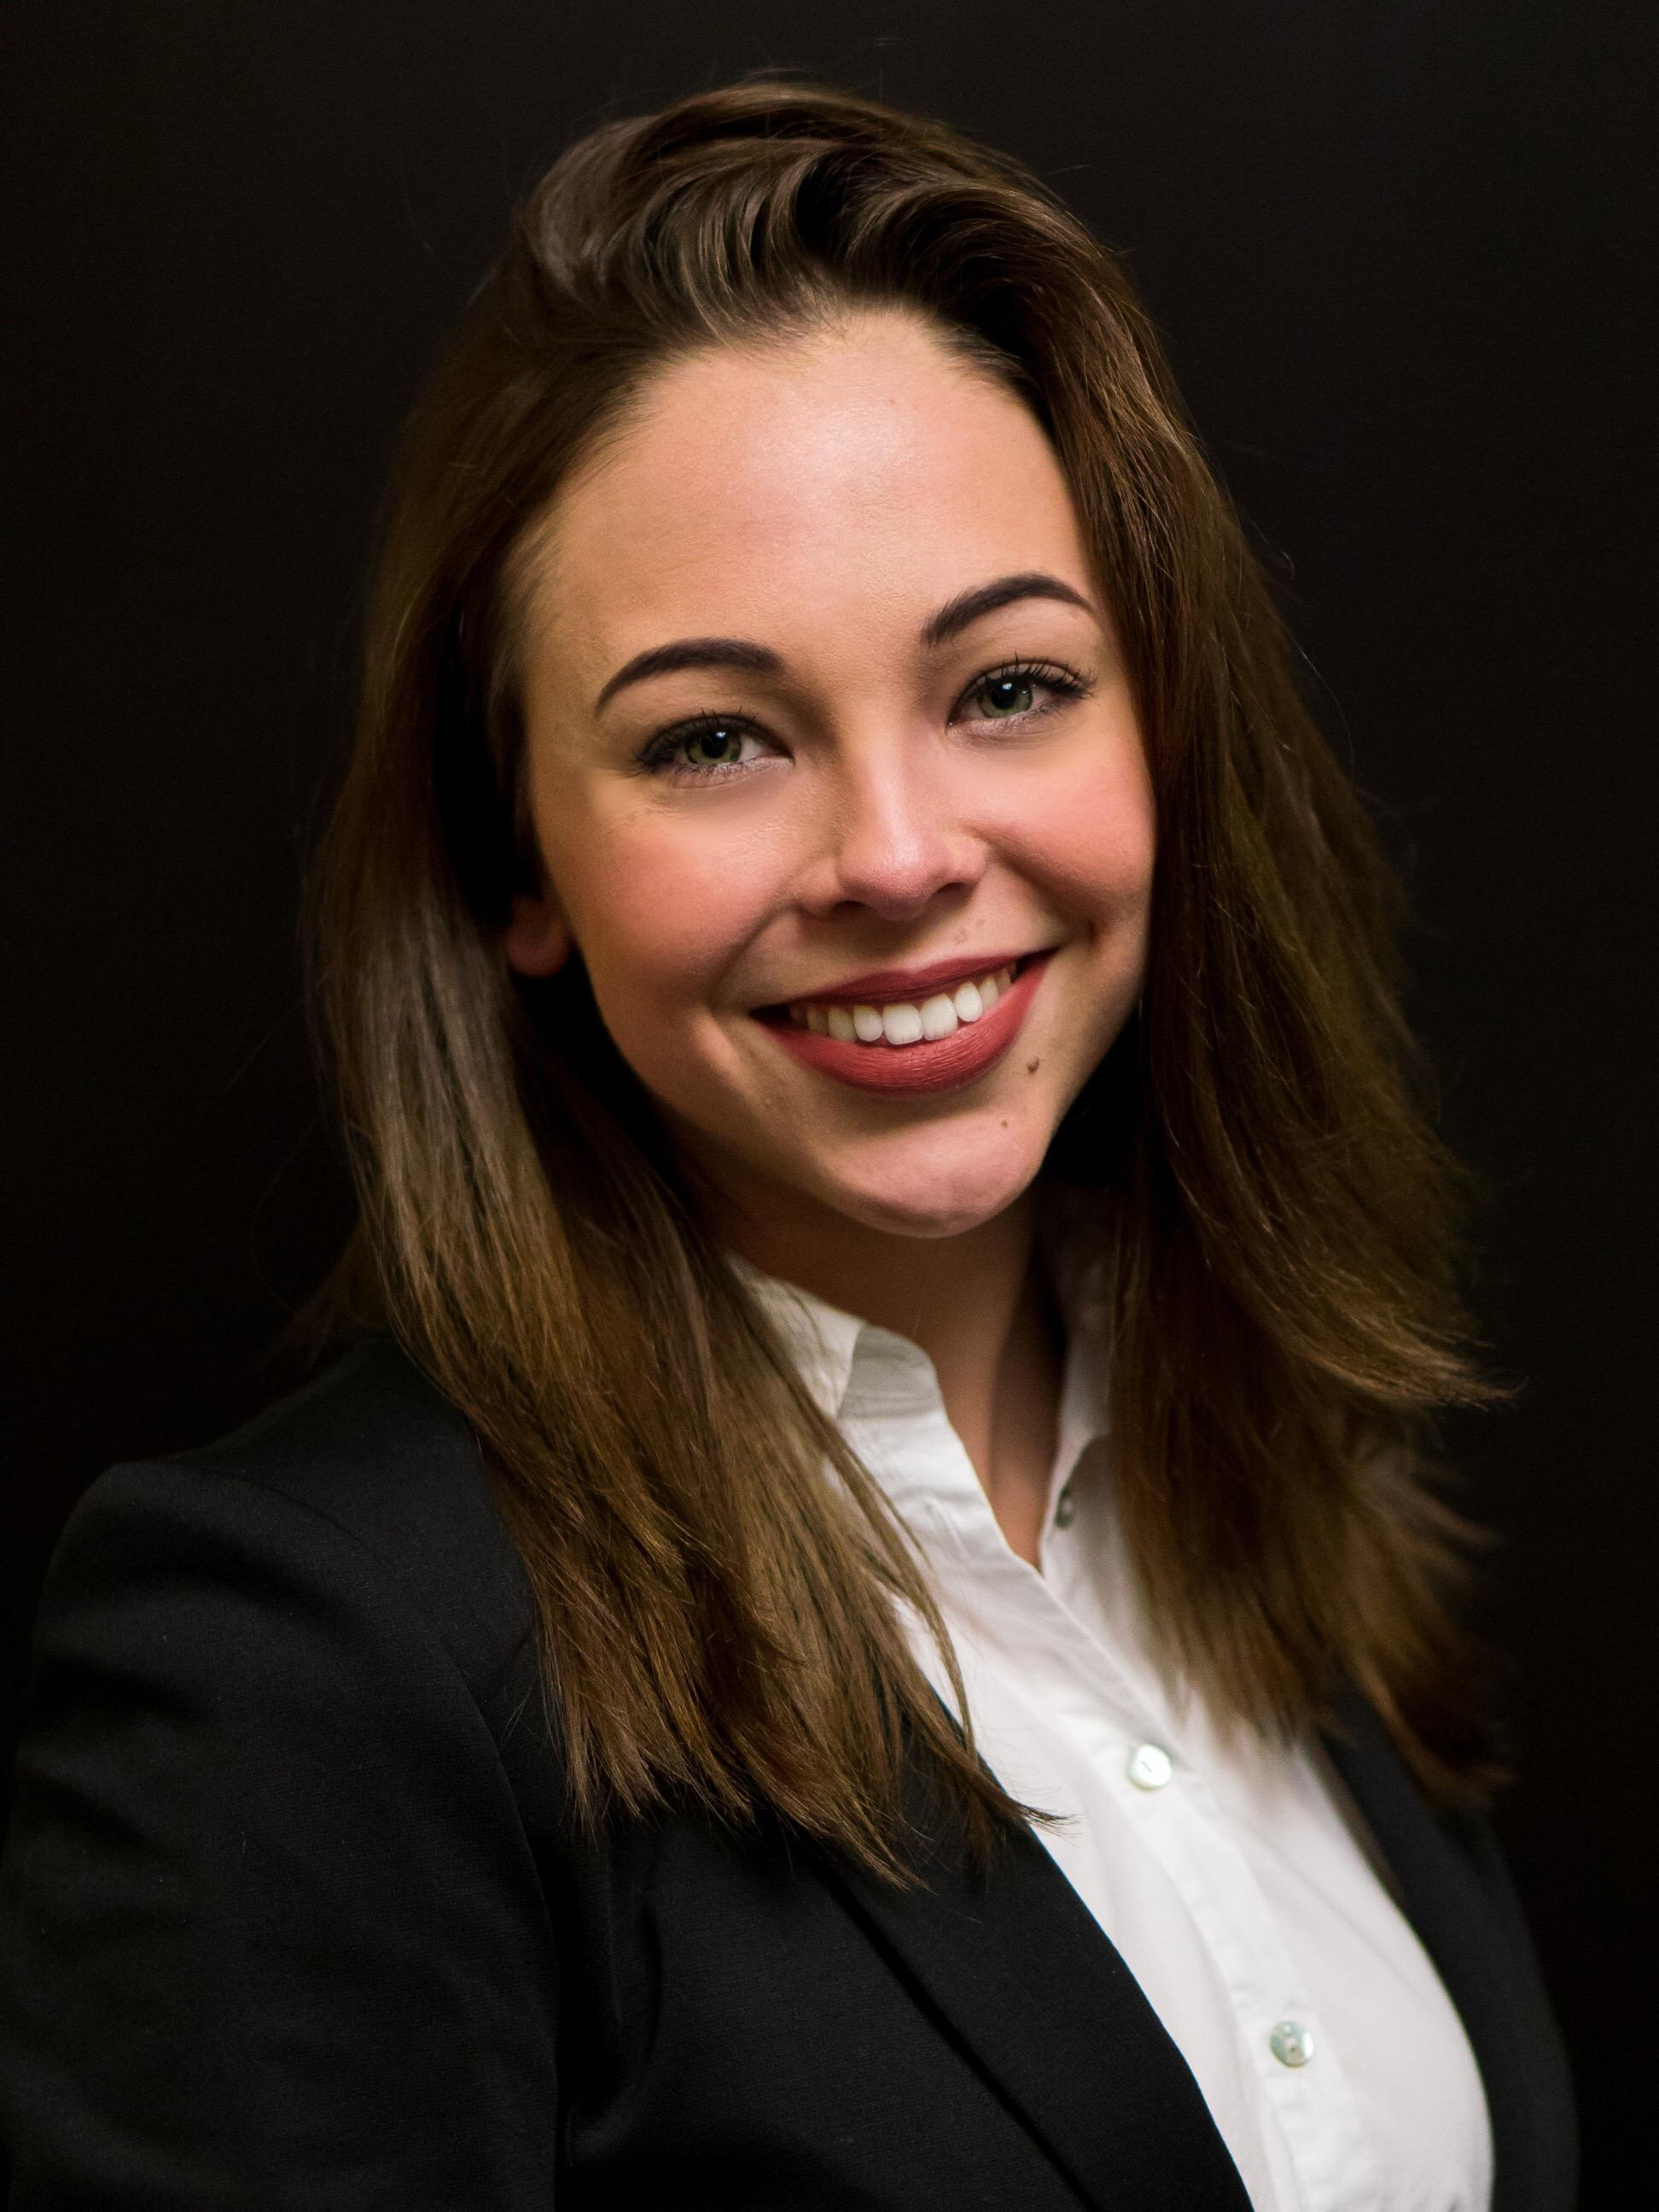 SHELBY ELLERTH  Your Financial Professional & Insurance Agent